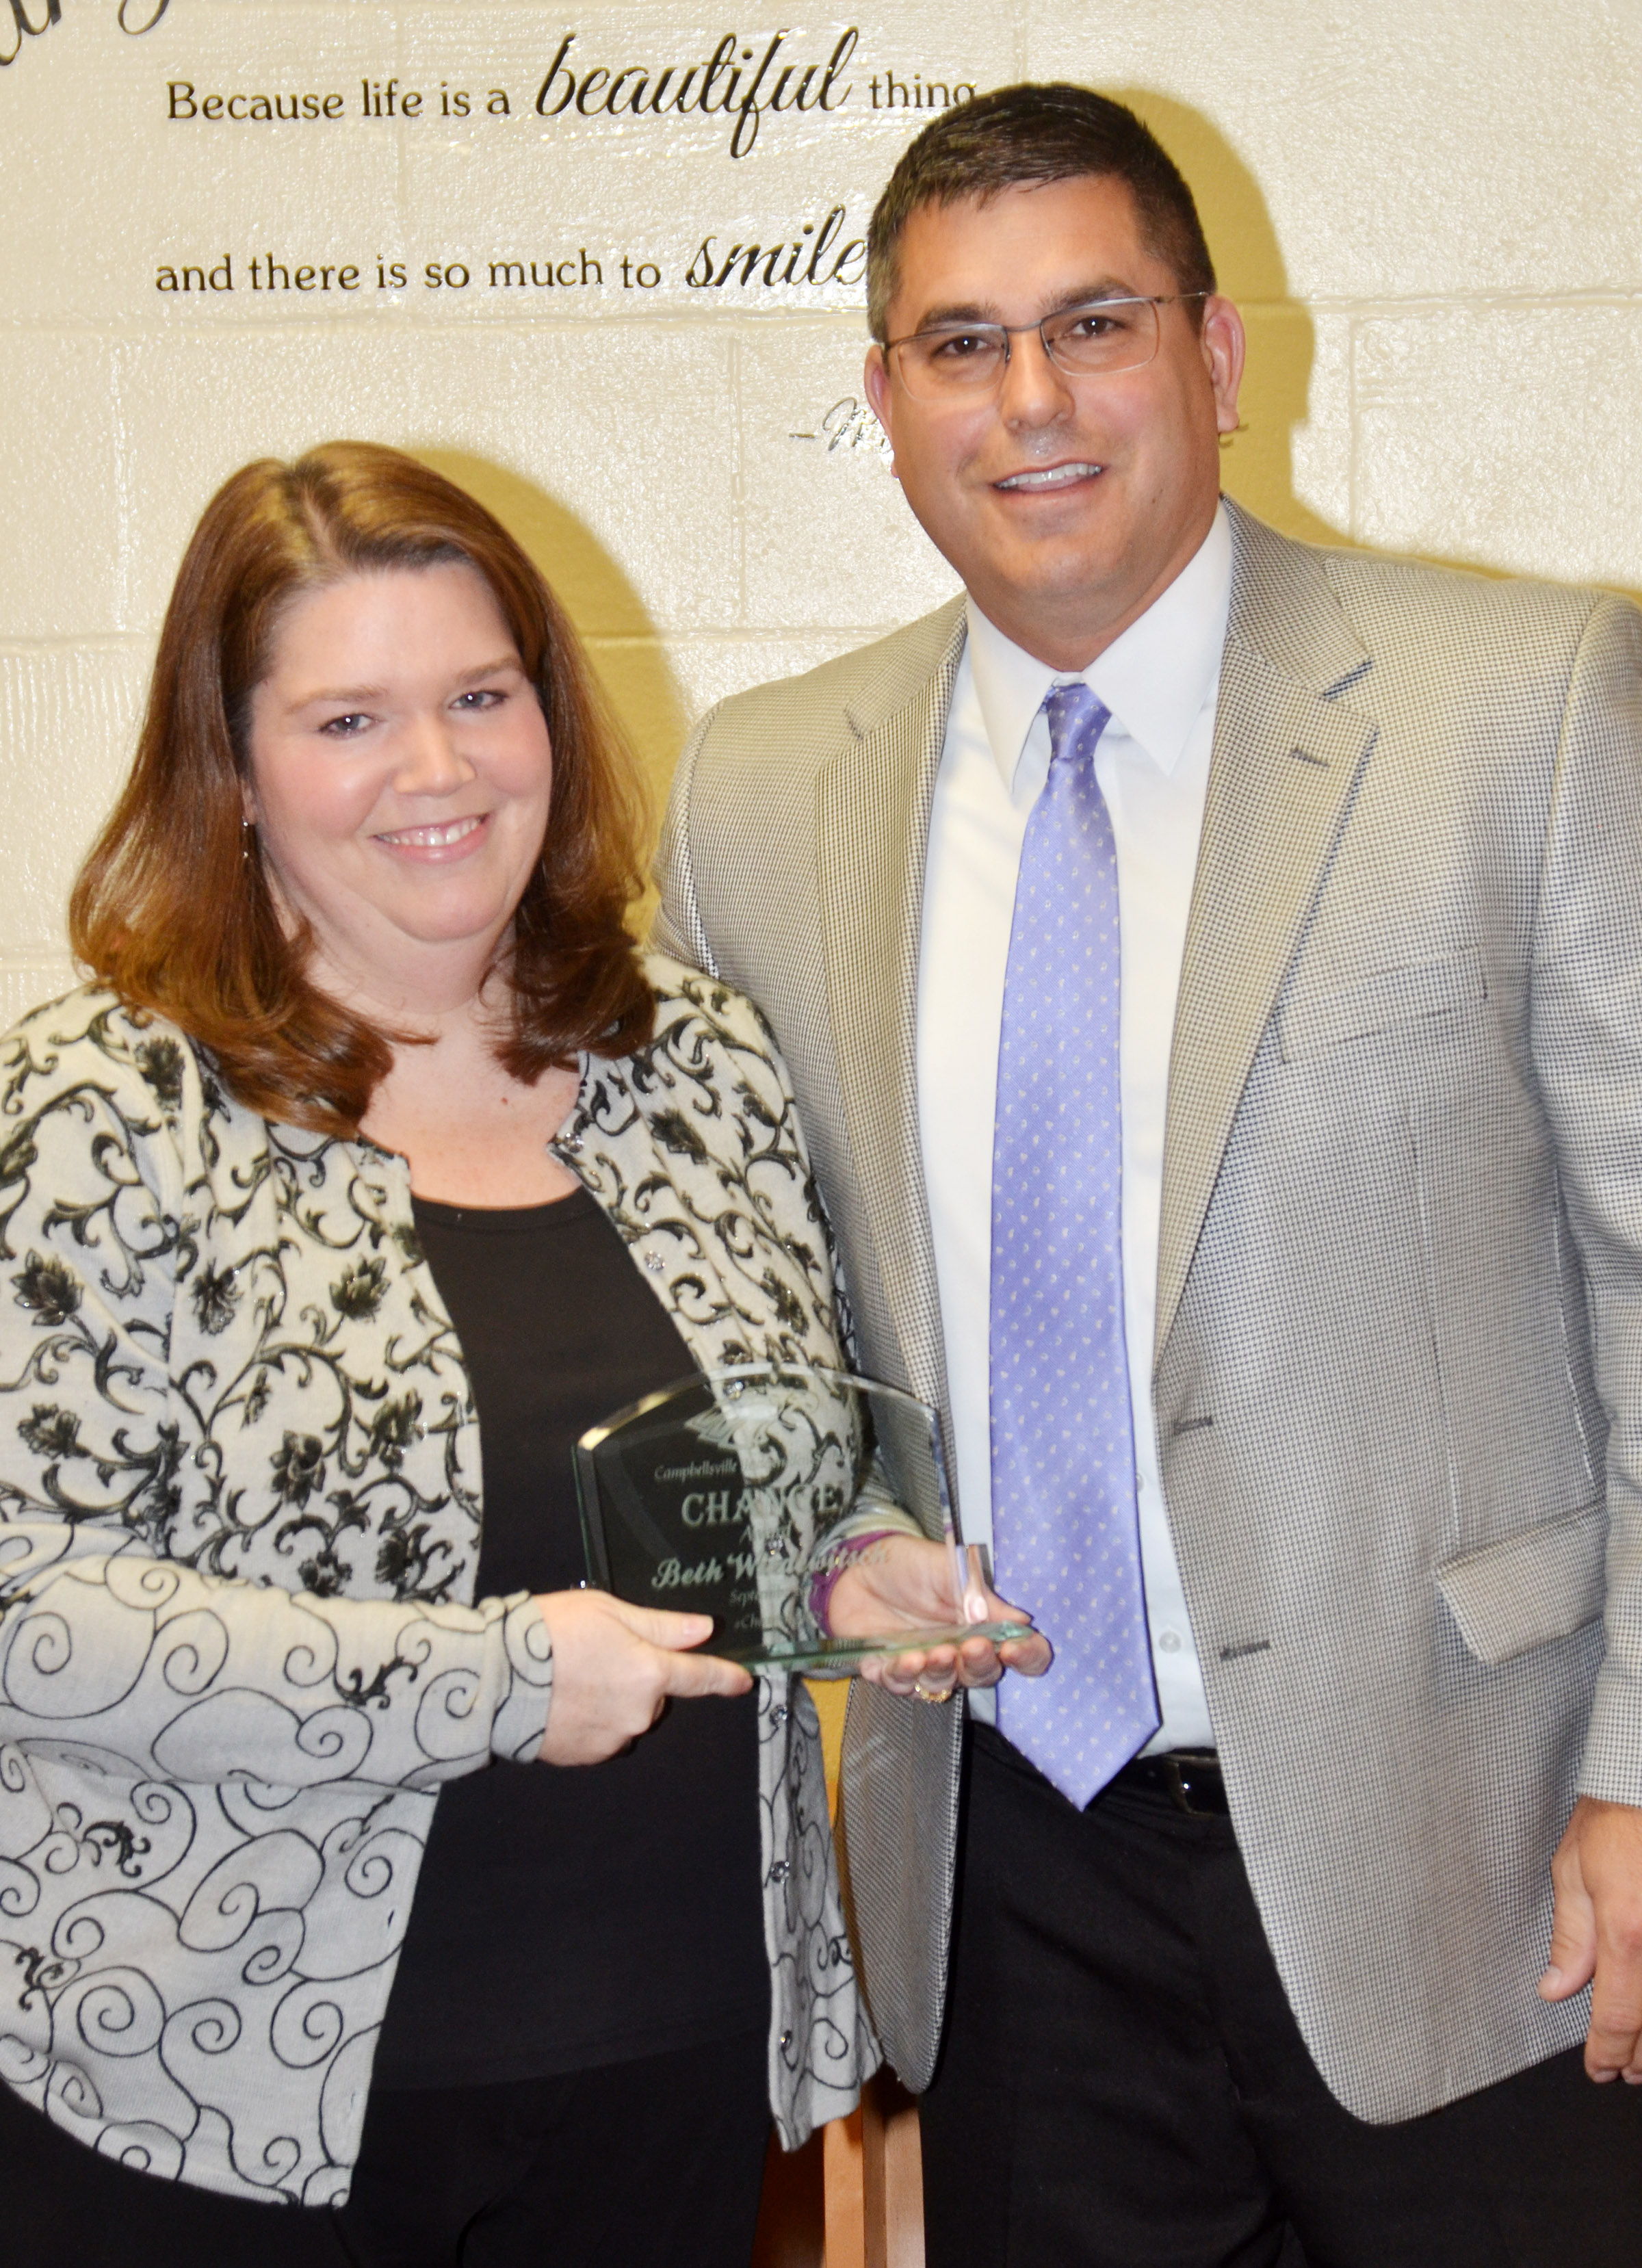 Campbellsville Independent Schools Superintendent Kirby Smith, at right, honors CES/CMS Guidance Counselor Beth Wiedewitsch with the certified Change Award.